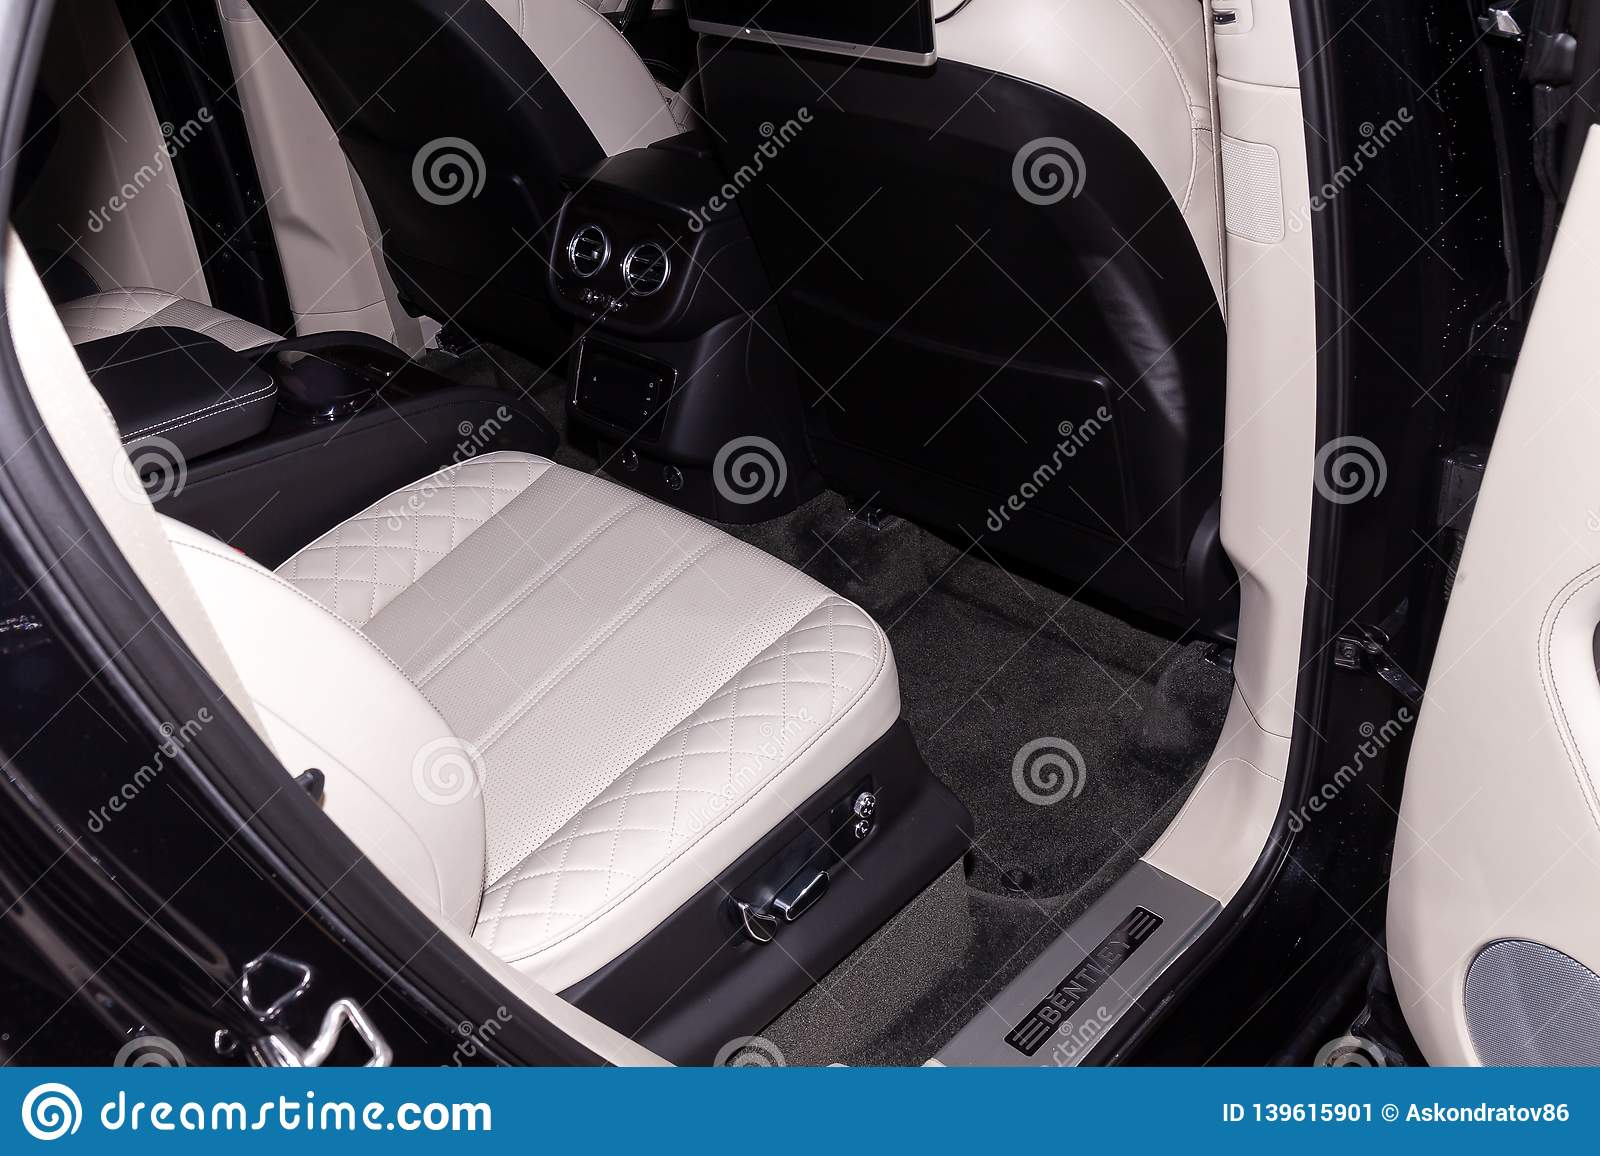 Interior View With Rear Seat Of Luxury Very Expensive New Black Bentley Bentayga Car Stands In The Washing Box Waiting For Repair Editorial Photo Image Of Emblem Control 139615901